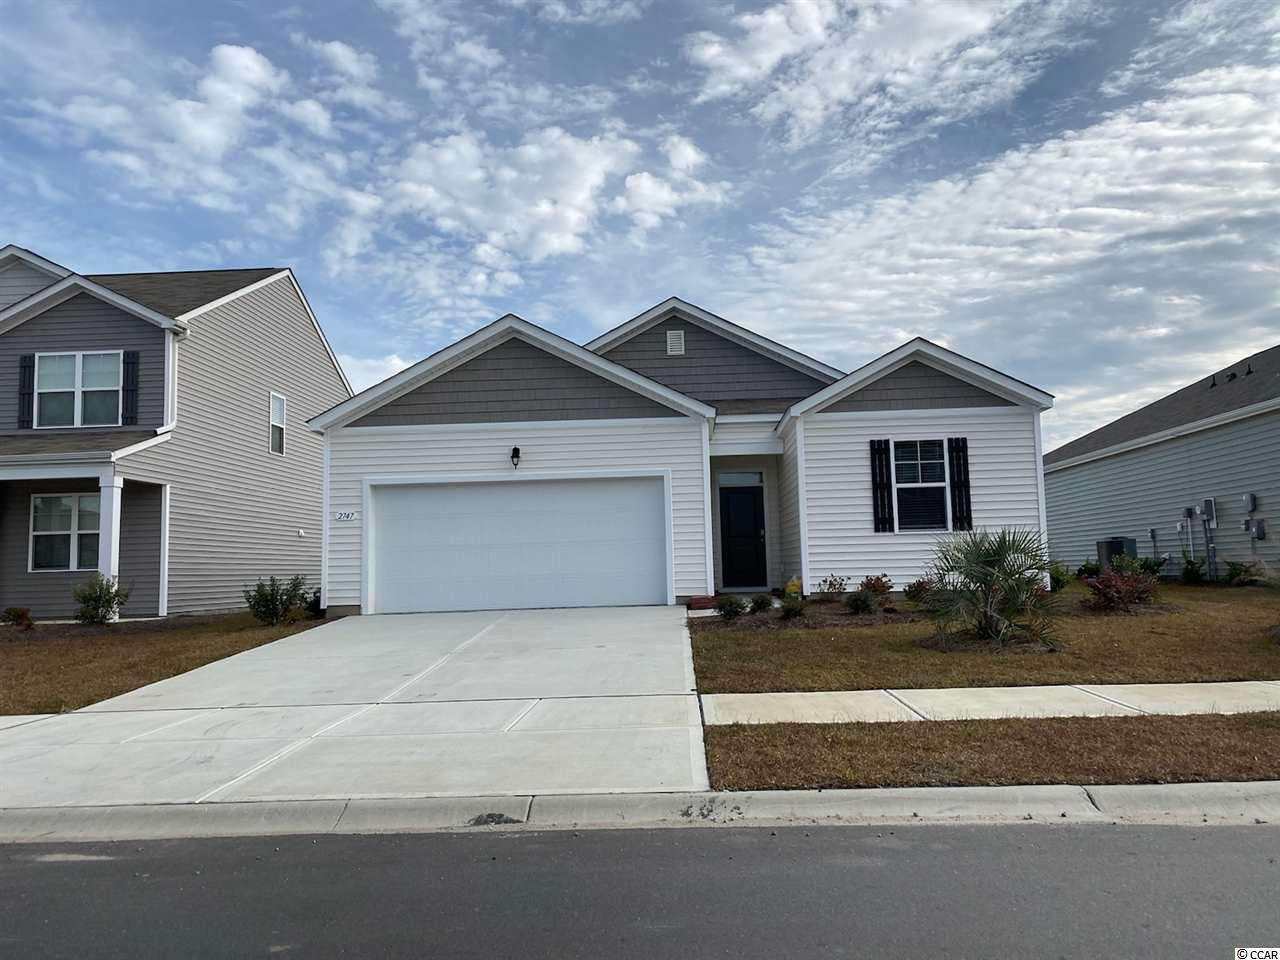 This adorable open-concept 1-level SMART HOME will be ready this JUNE!!! Enjoy a large family room, private owner's suite, rear covered porch and 2-car garage. Kitchen features cream cabinets, granite countertops, stainless steel appliances including refrigerator, and breakfast bar with pendant lights. Home has solid surface flooring (resilient hardwood-look vinyl) throughout main living areas, bathrooms and laundry room. Washer, dryer and garage door opener included! Our home owners will enjoy a gracious pool, hot tub, air conditioned pickle ball court/meeting space, walking trails and a short golf cart ride to the beach. Live like you're on vacation! Photos of home are of a model home of same floor plan in another community and are for presentation only.